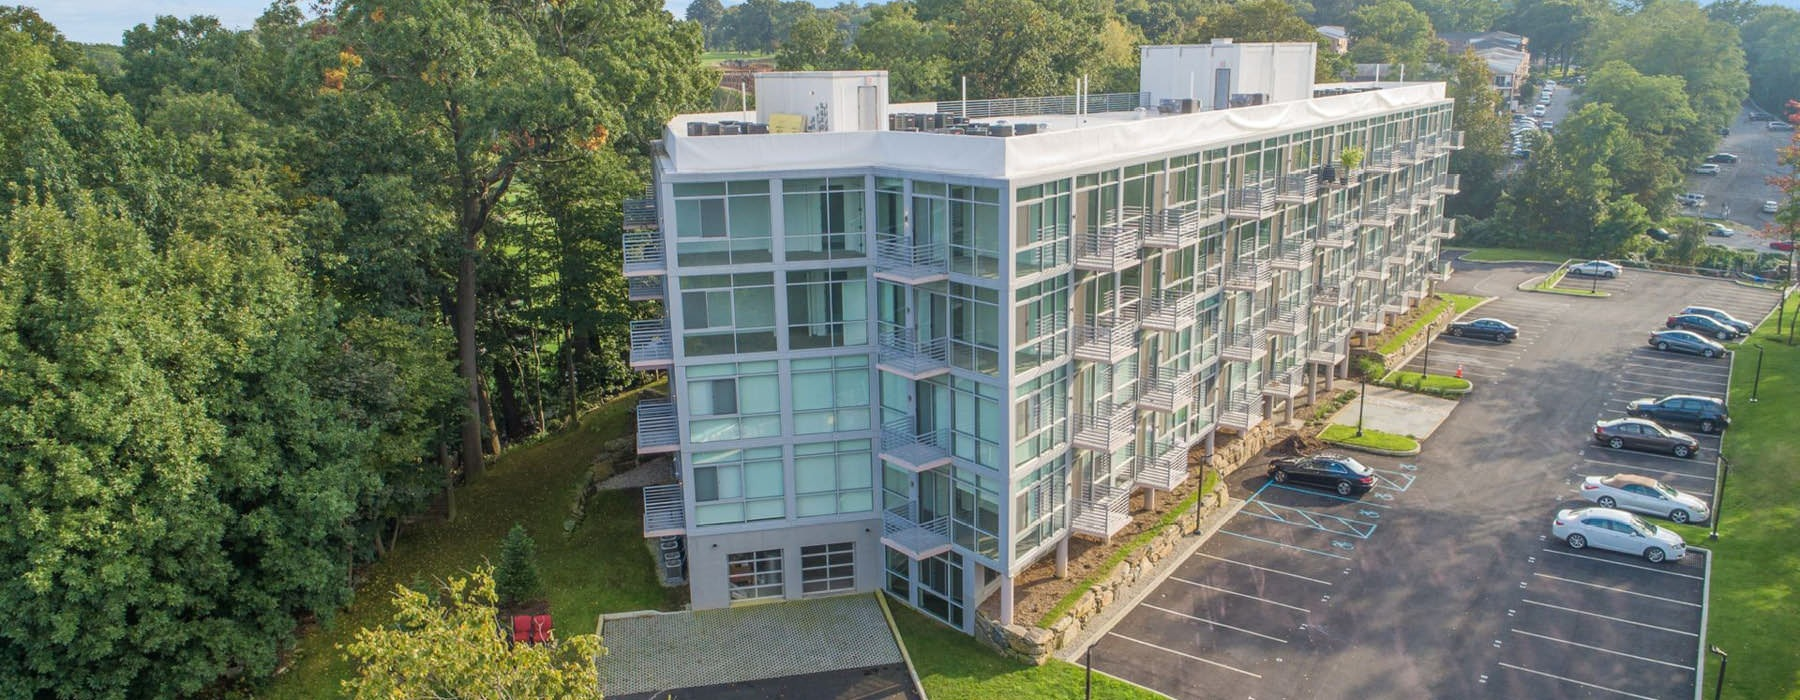 aerial view of Glasshouse 250 and parking lot